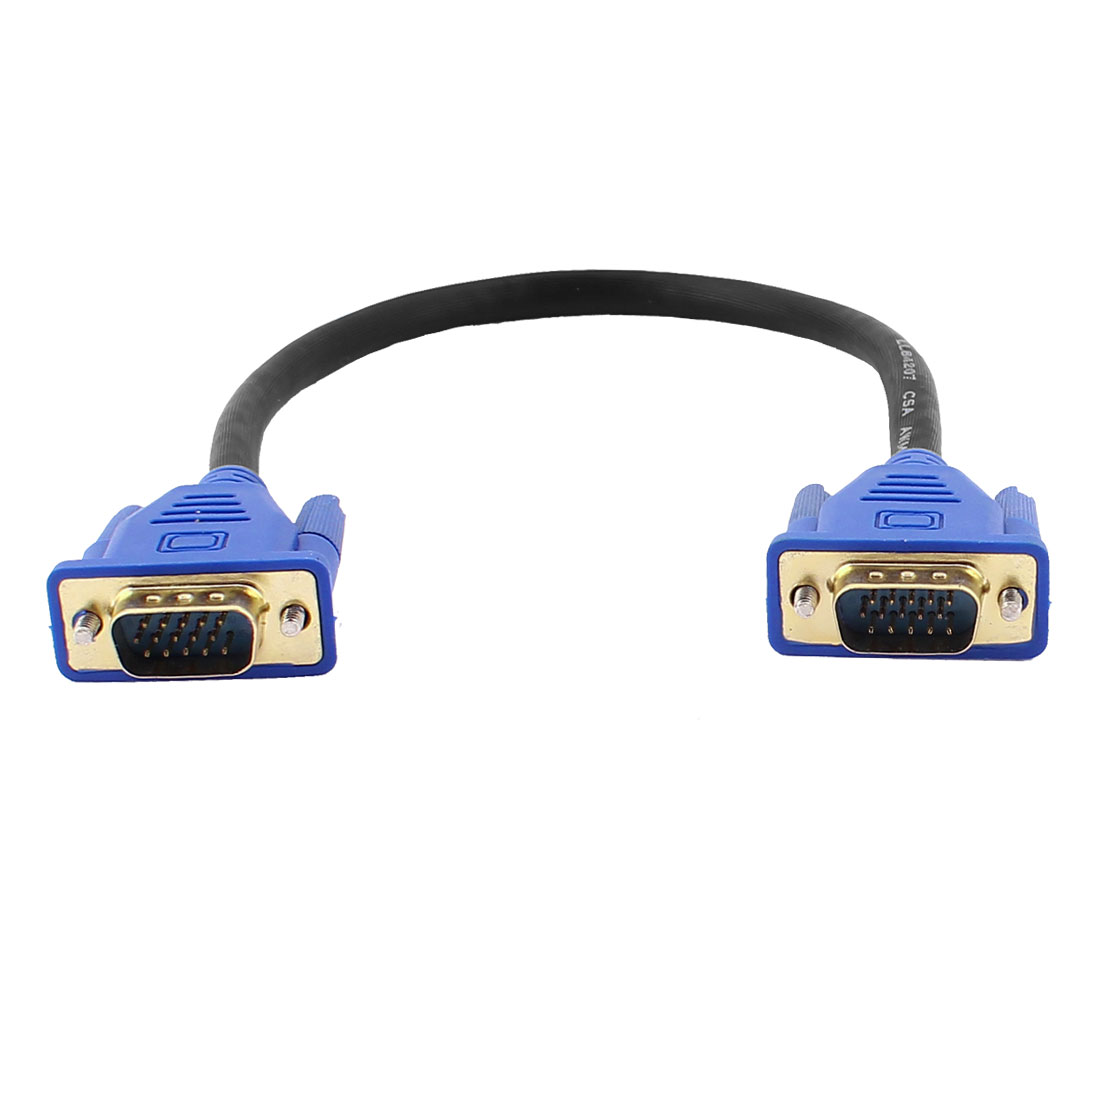 30cm 1Ft 15 Pin VGA Male to Male Connector M/M Adapter Cable Cord Blue for PC Laptop